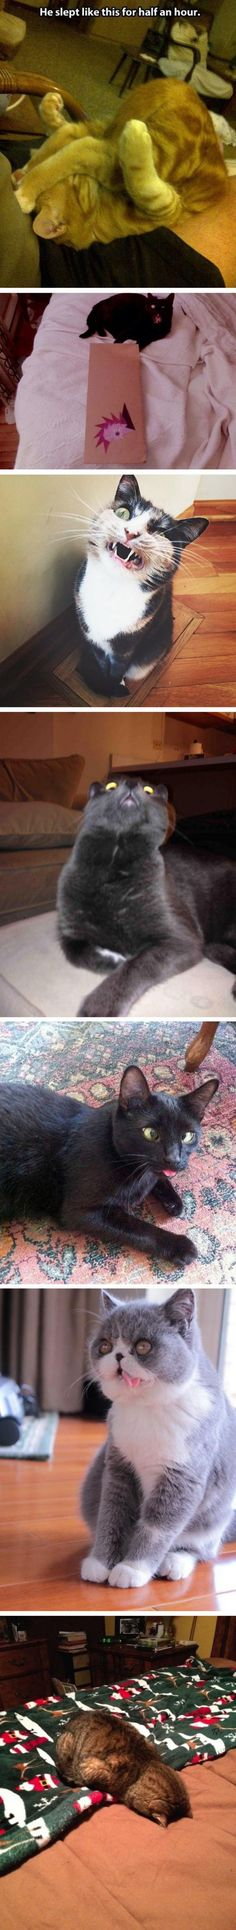 Crazy Cats  - Visit http://dailyhaha.com/pictures.htm for daily funny pictures. #funny #cats